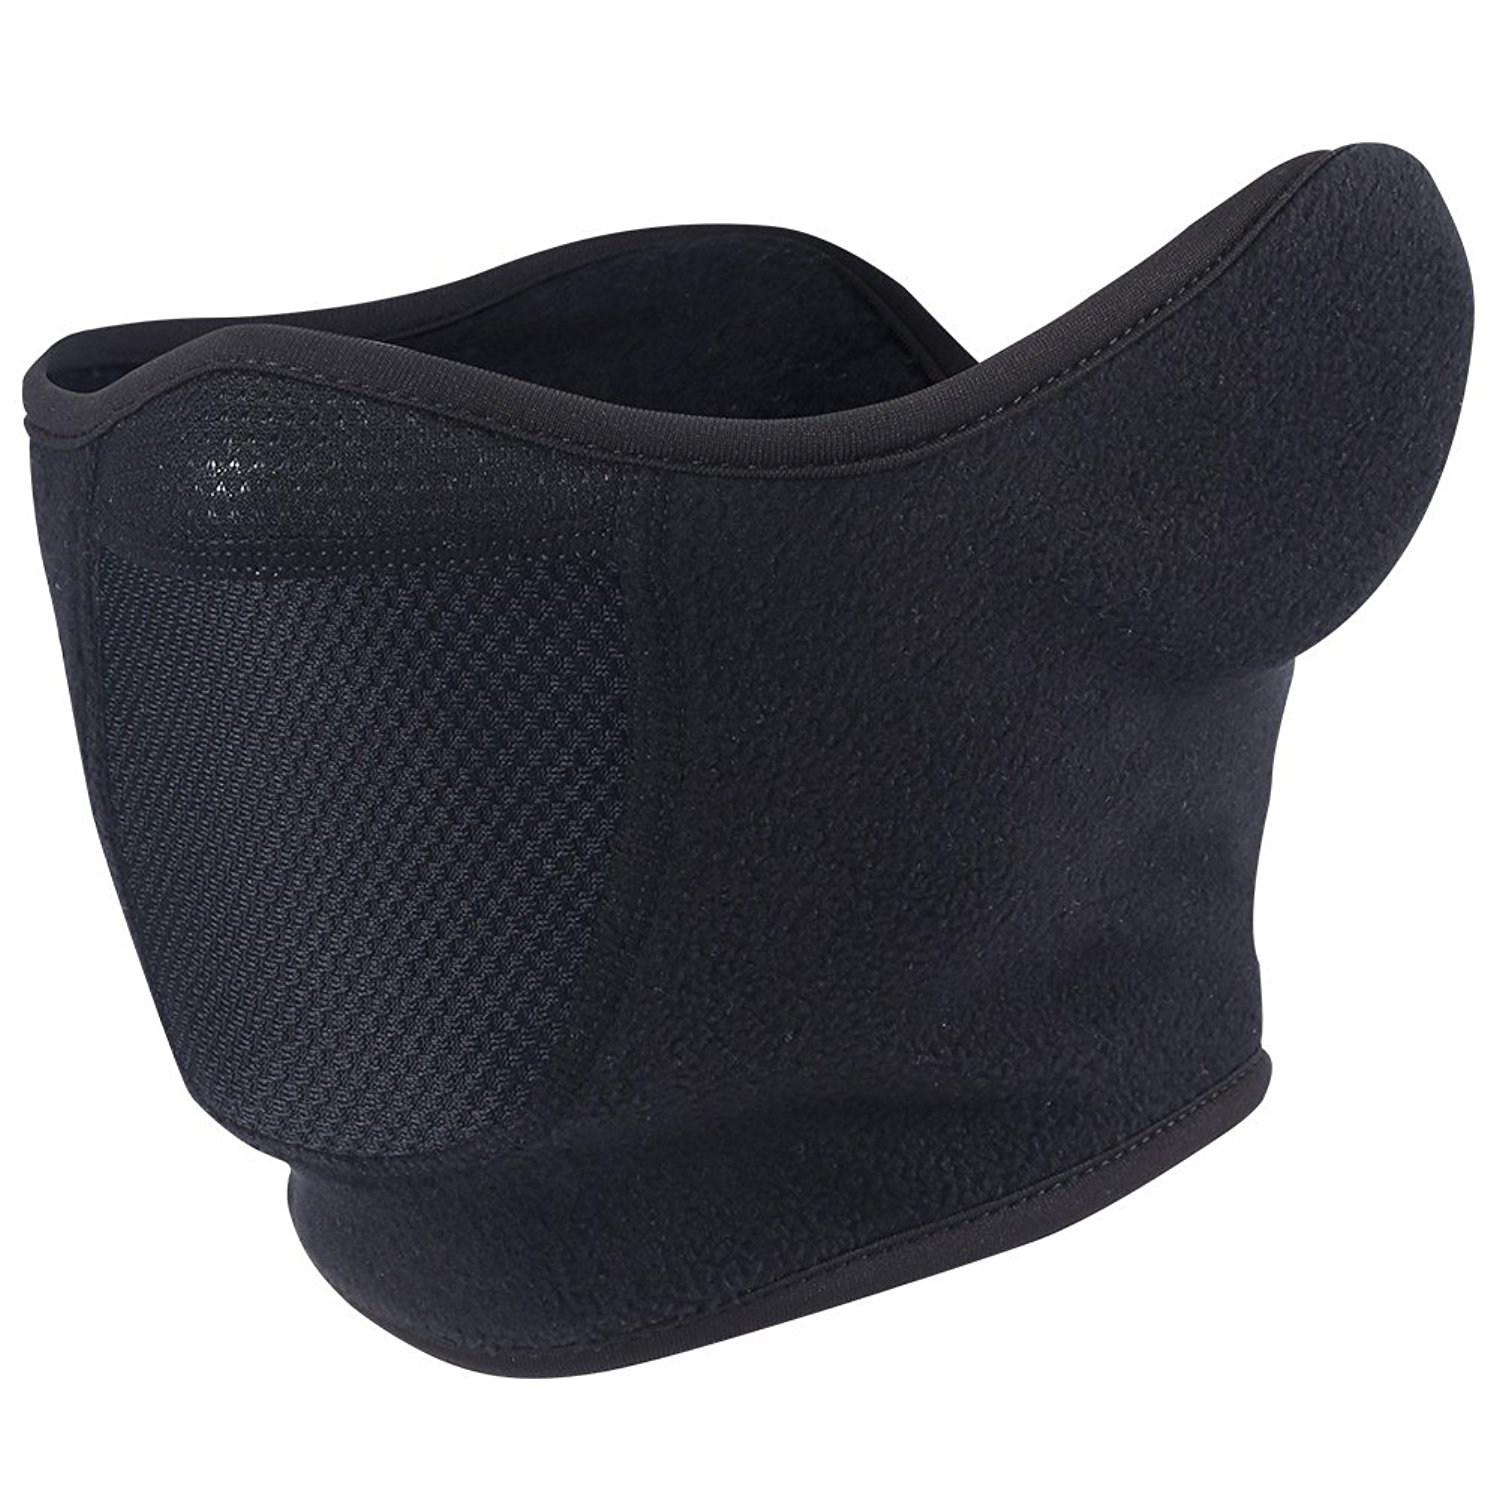 Face mask neck Cover Half Face Ski Mask With Air Hole